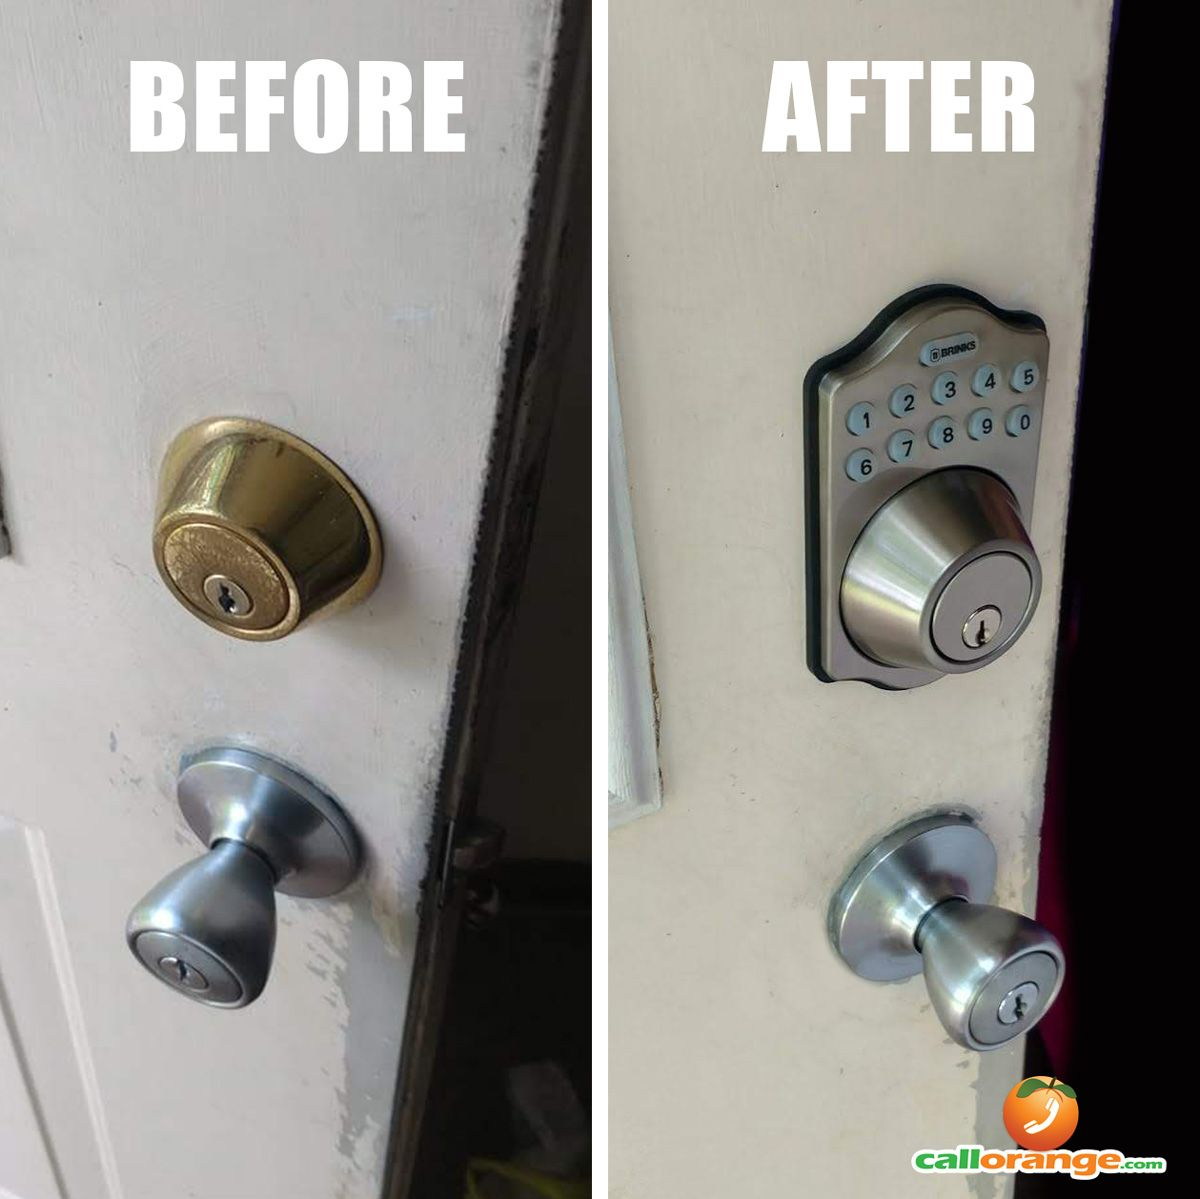 Change My House Locks Upgrade The Security On My Home Business Home Security Tips Home Security Systems Home Security